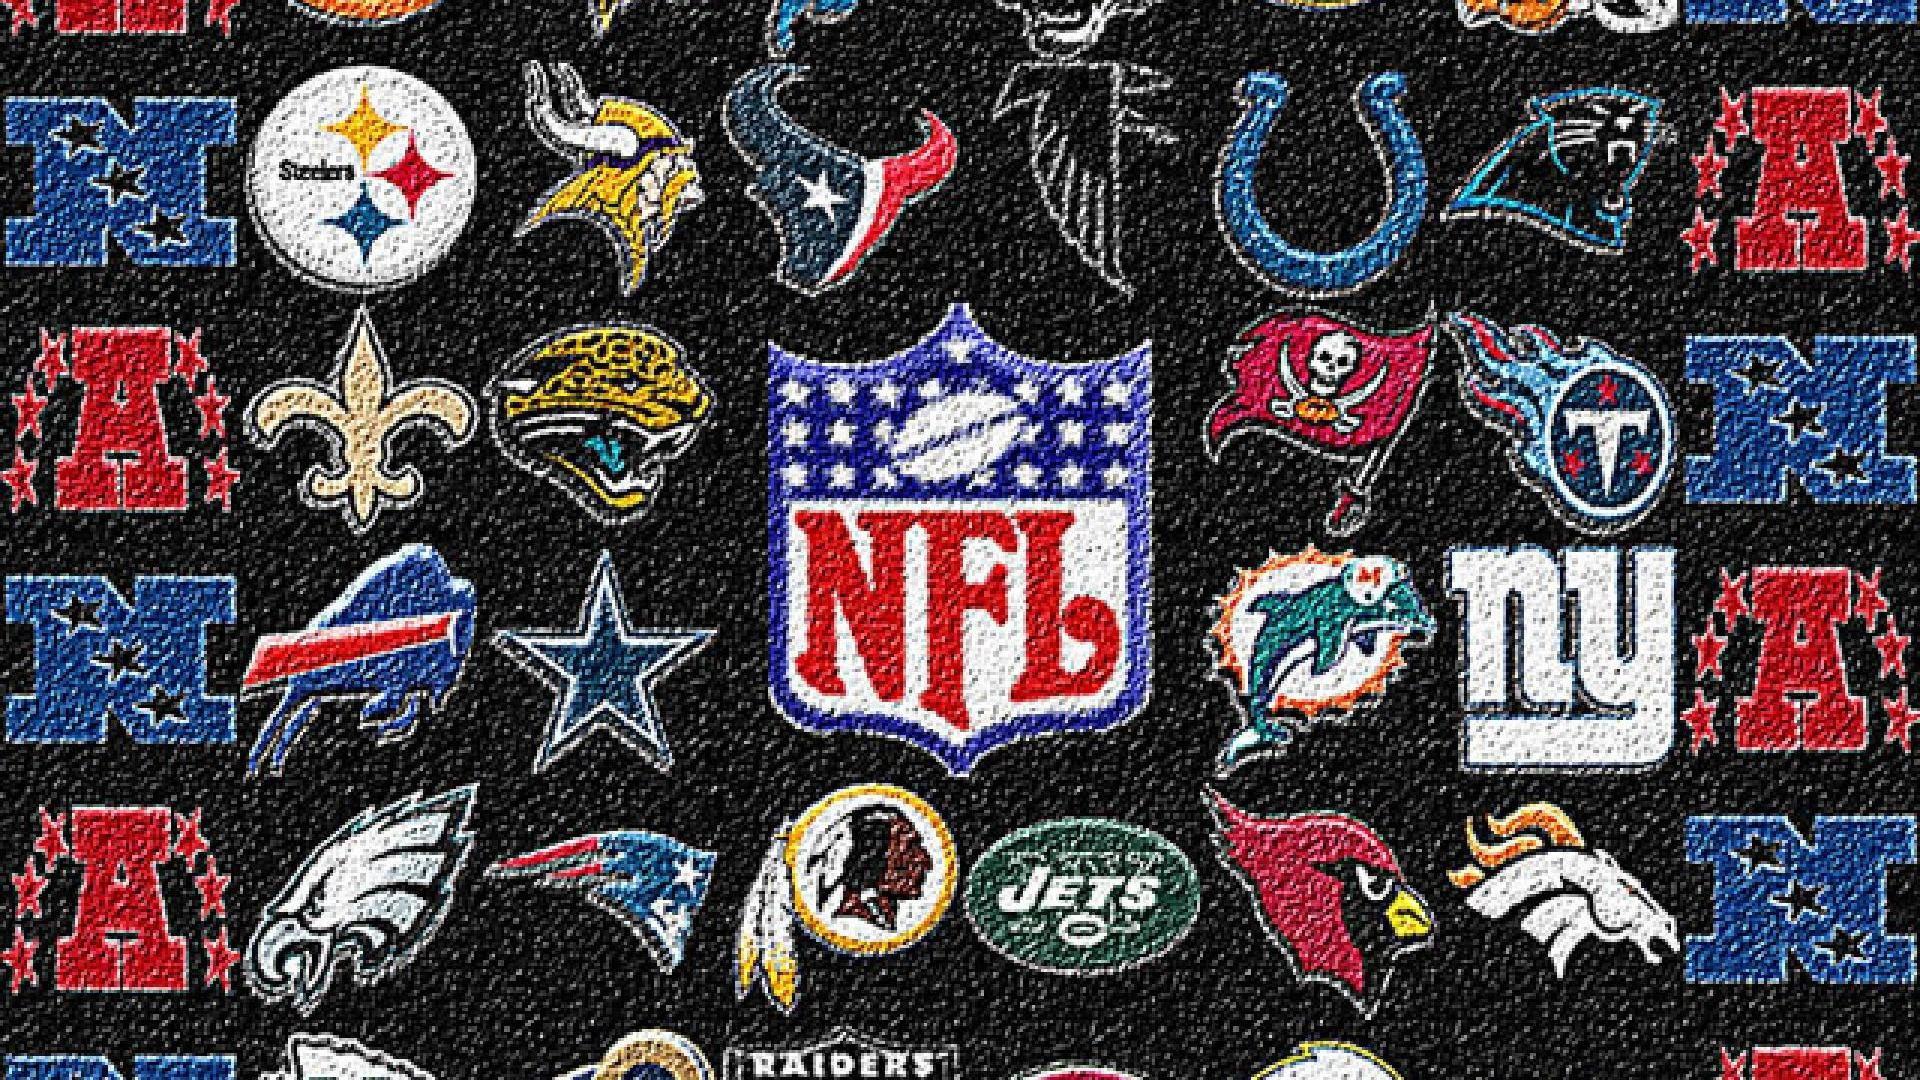 1920x1080 Beautiful Nfl Wallpaper | KuBiPeT Graphics